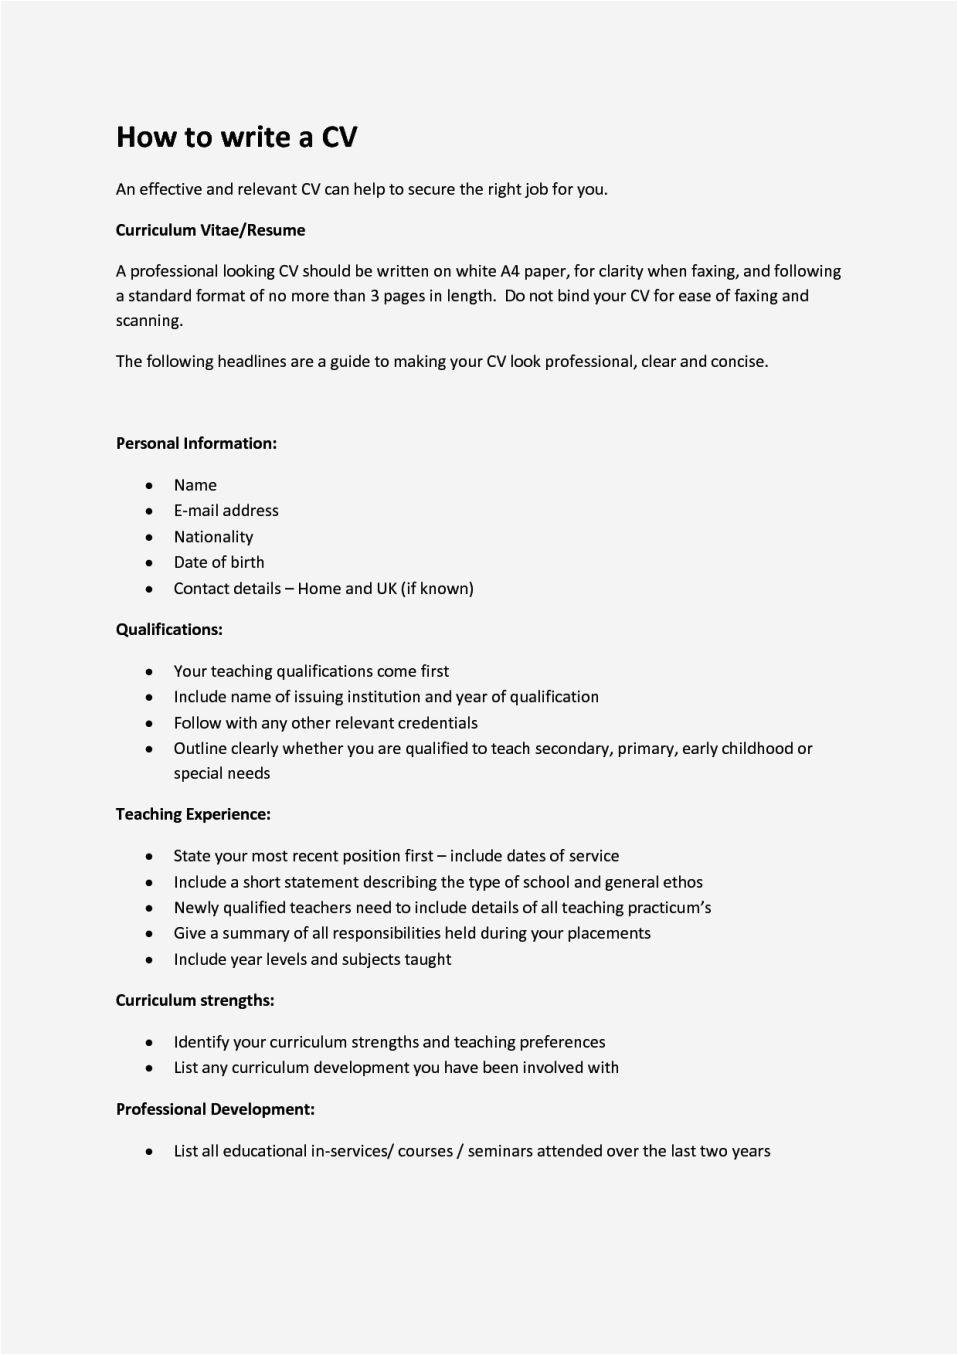 how to write a cv for a 16 year old with no experience uk